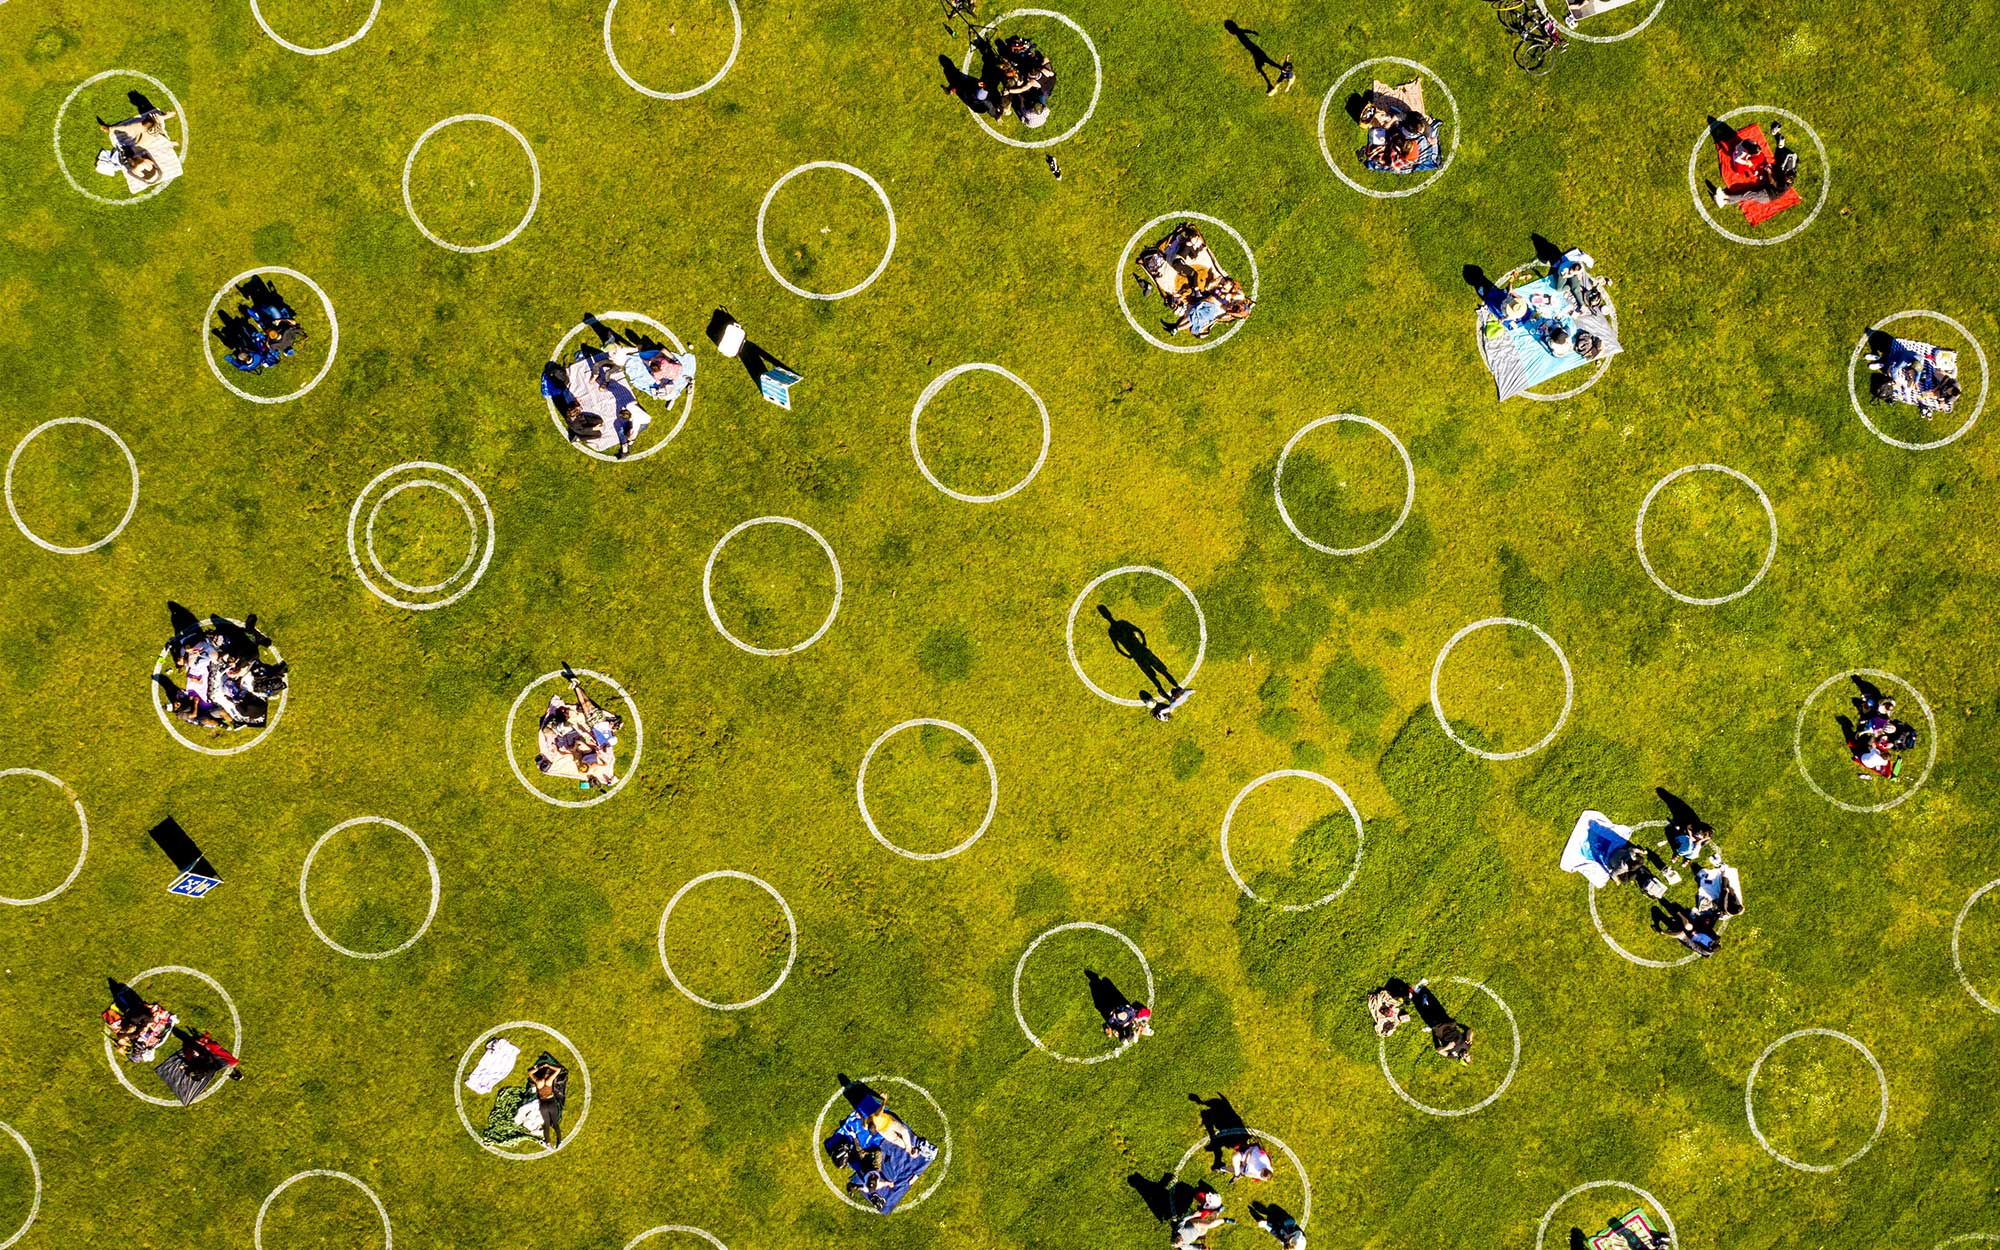 Aerial photo of small groups of people congregating on a green lawn in widely spaced circles.